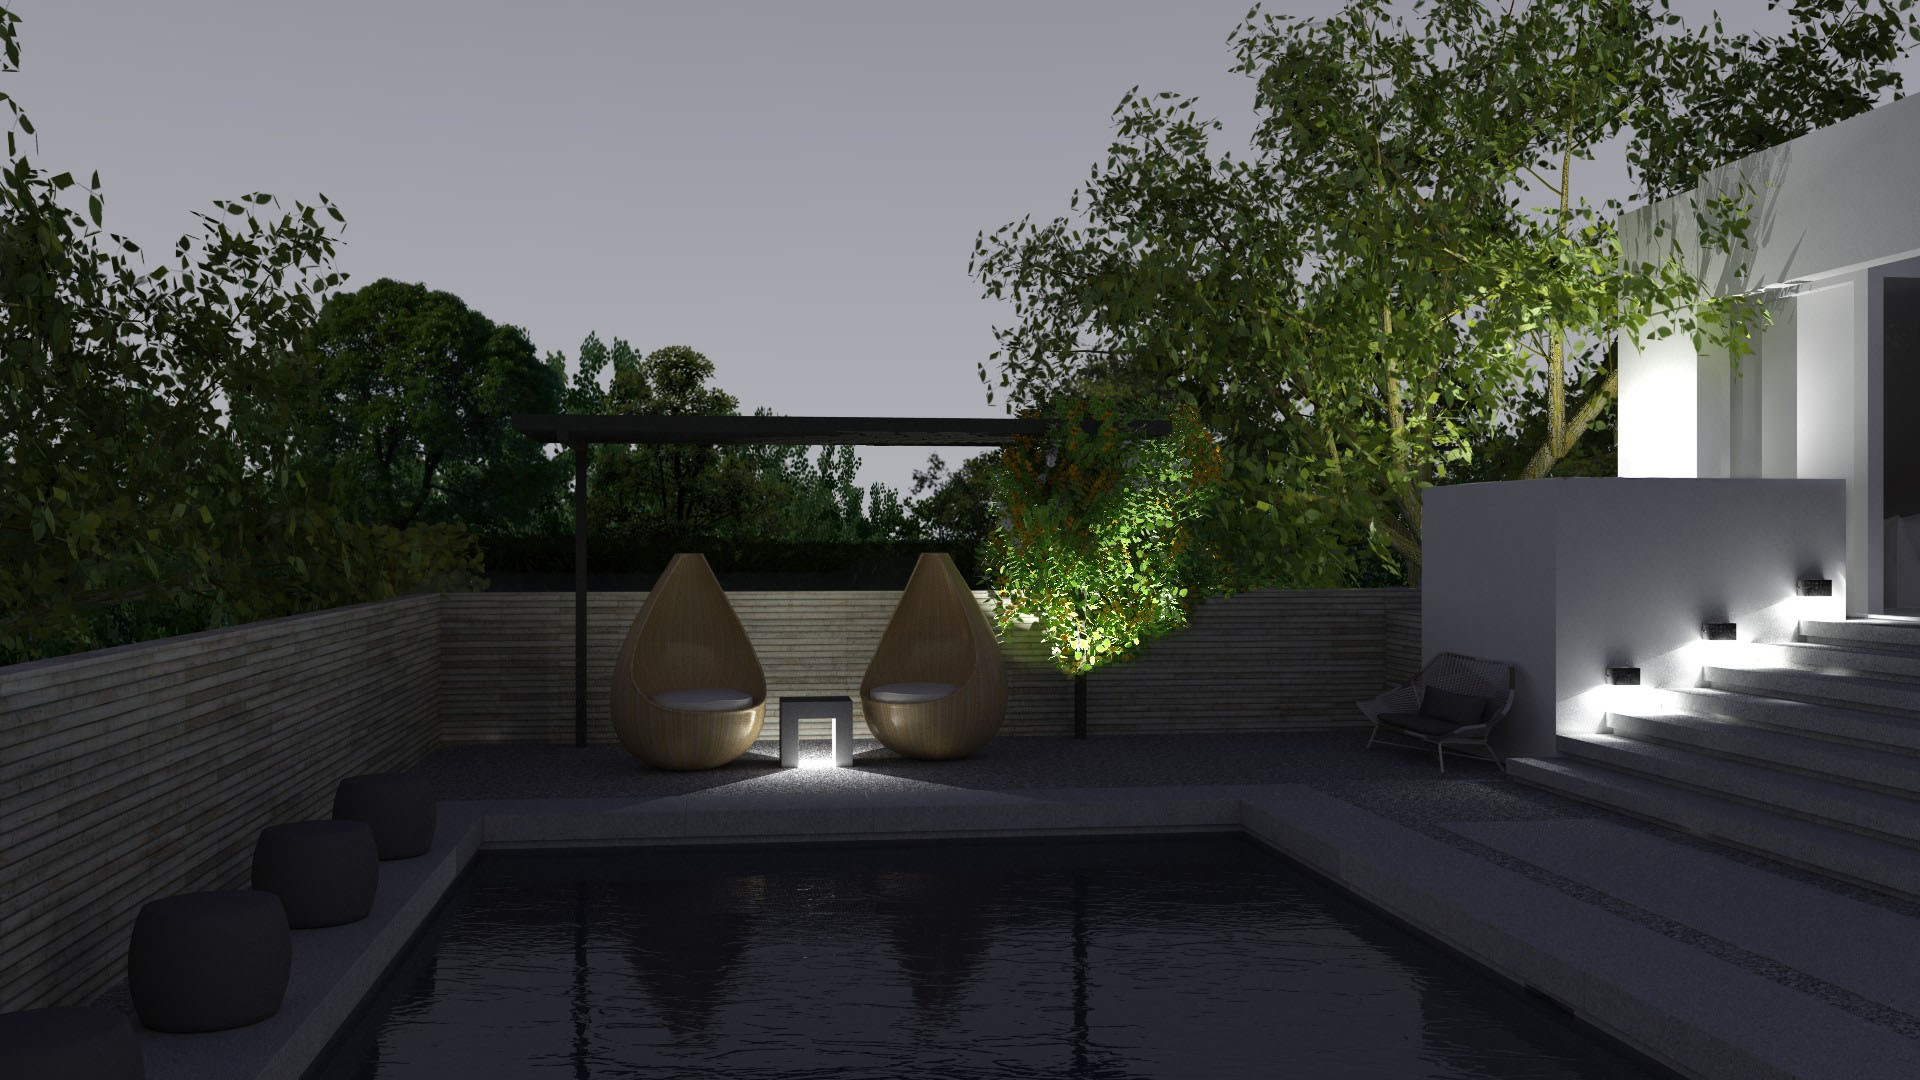 Pool area visualisation - comp 1.jpg